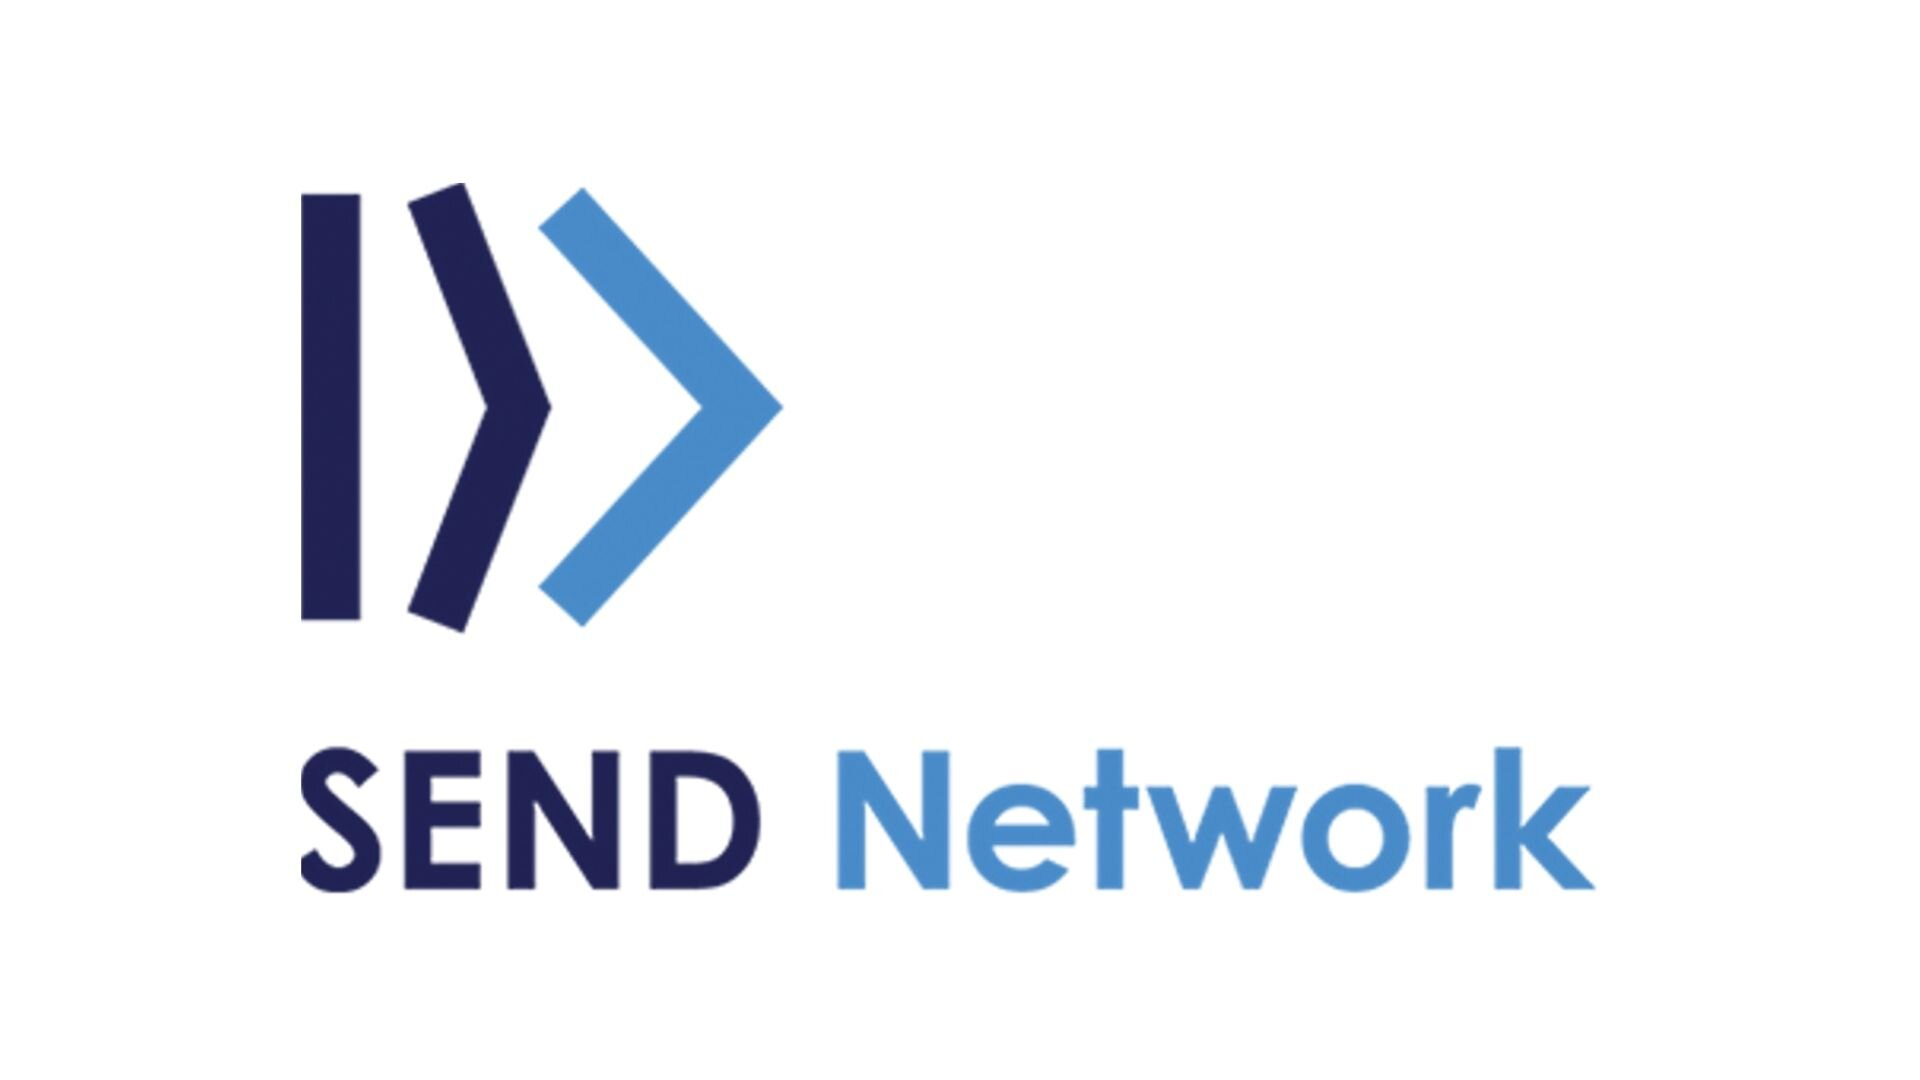 We're proud to be part of the  SEND Network  and to partner with fellow church planters in our shared vision of reaching people with the gospel.